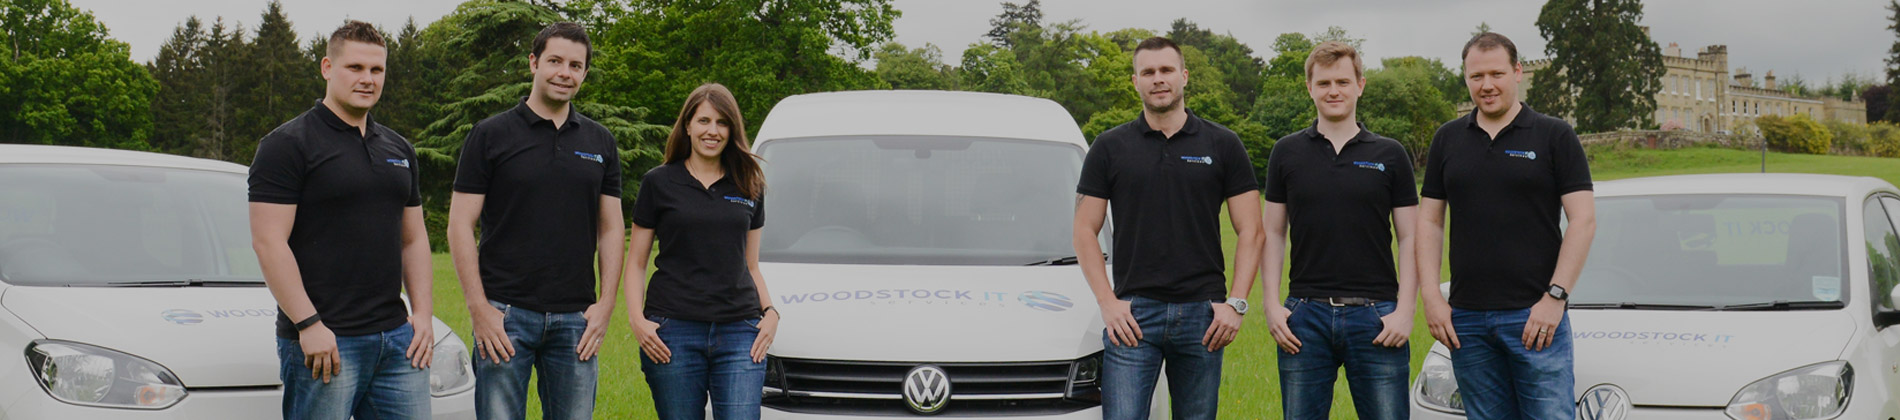 Woodstock IT banner image employees infront of Woodstock cars and van